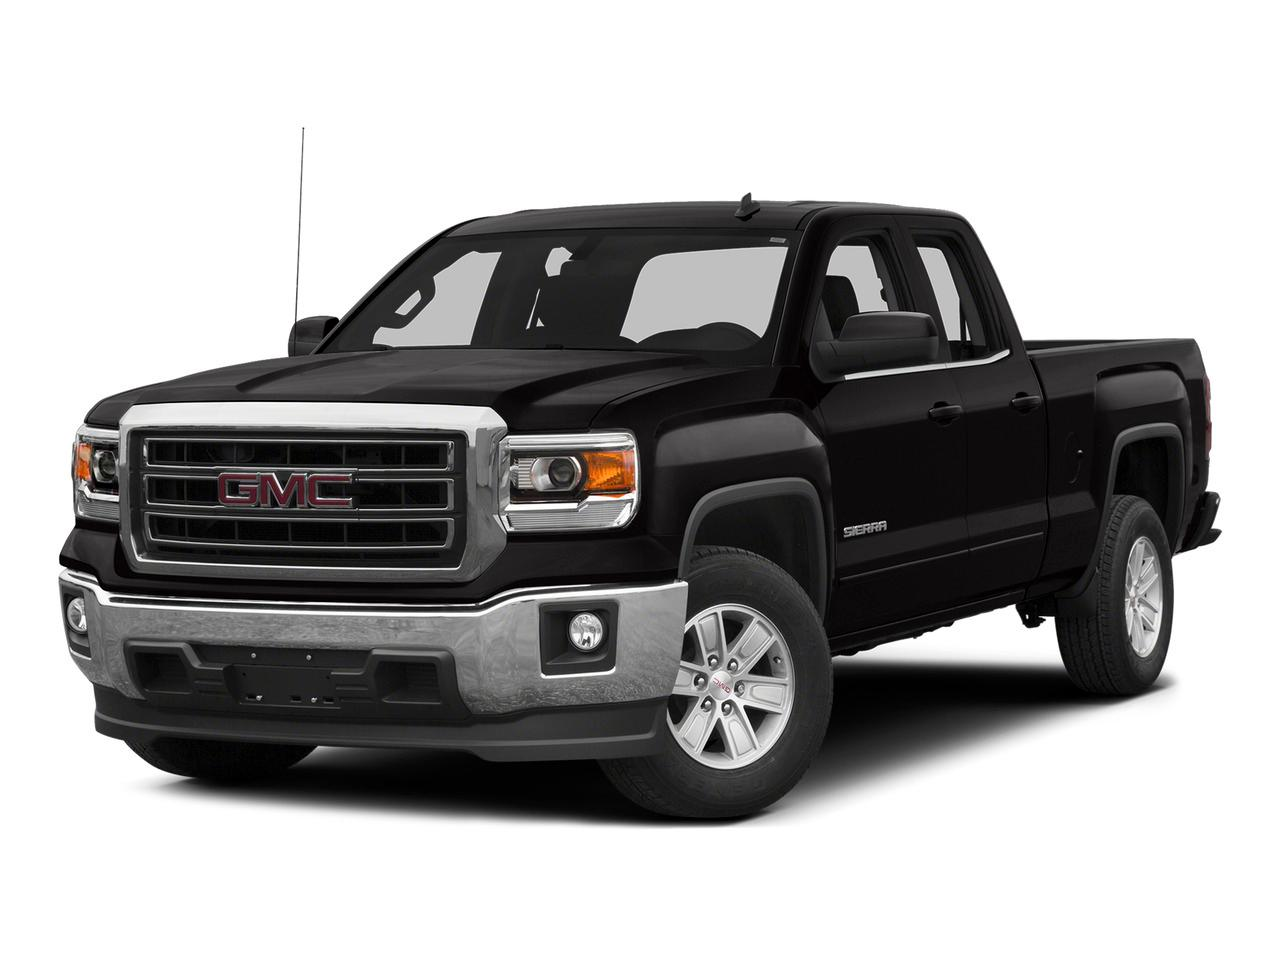 2015 GMC Sierra 1500 Vehicle Photo in West Chester, PA 19382